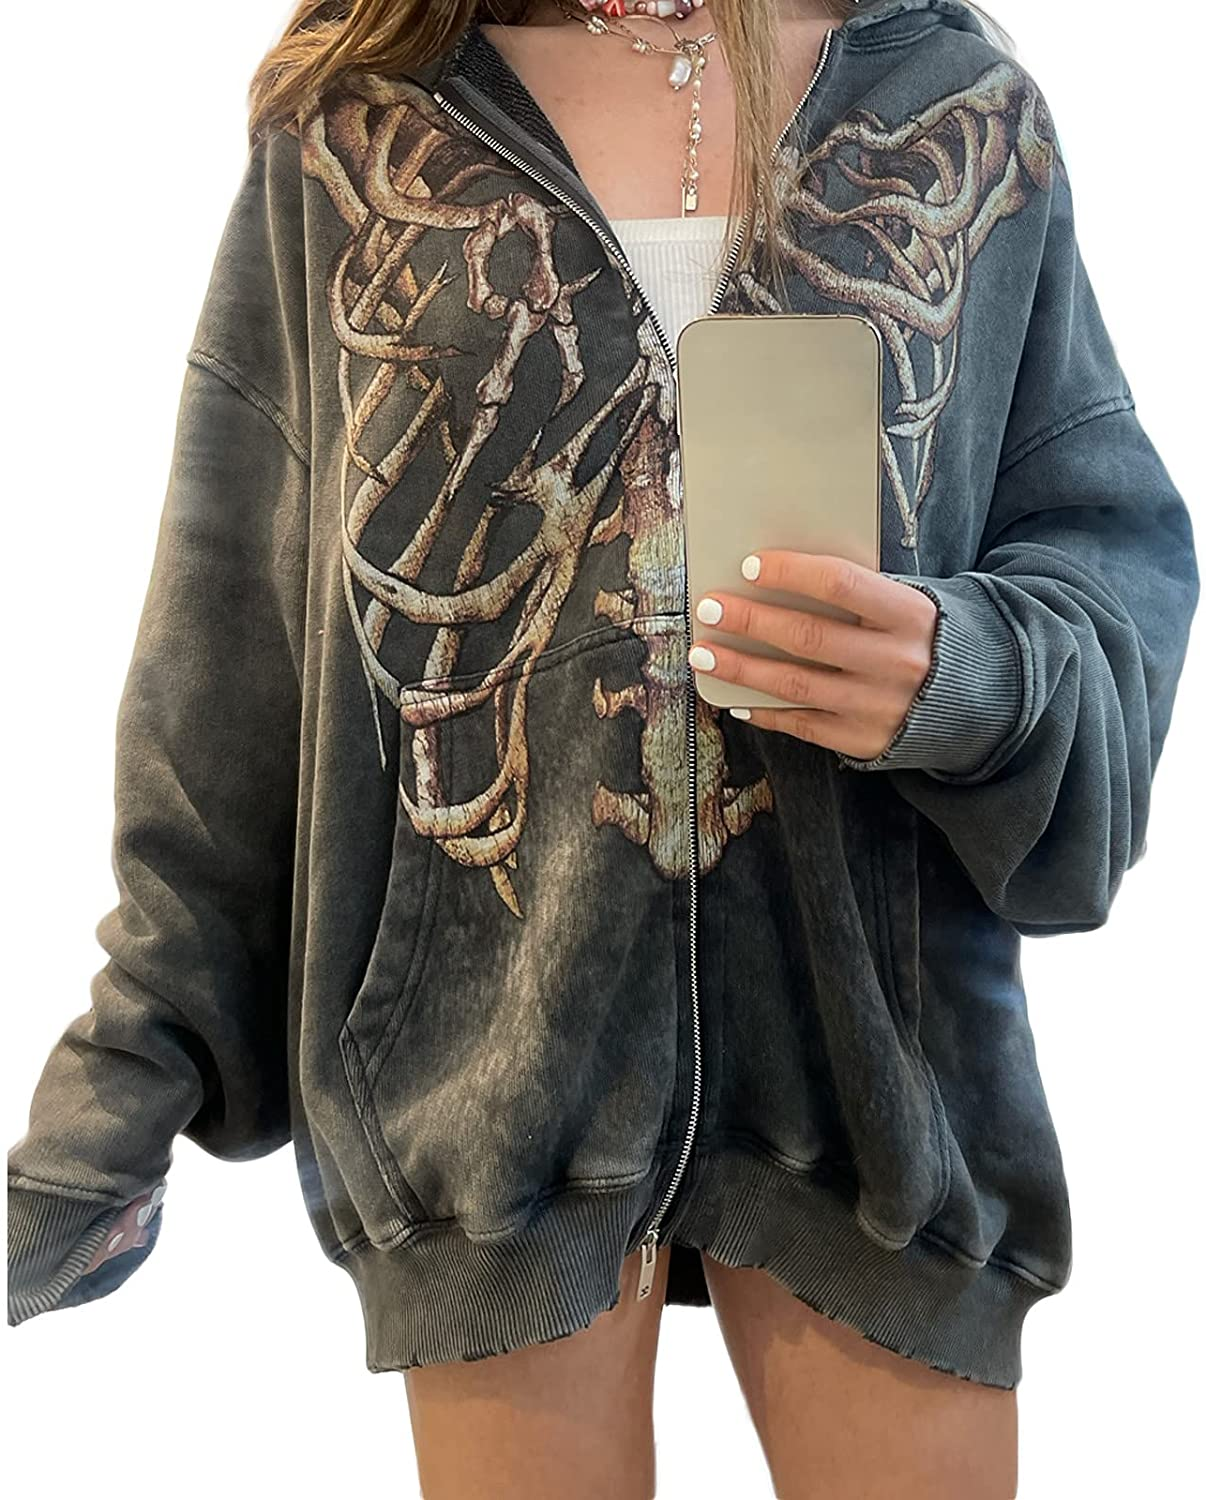 Y2K Oversized Skeleton Print Hoodies for Women Graphic Aesthetic Zip Up Cardigan Hooded Sweat Jacket with Pockets